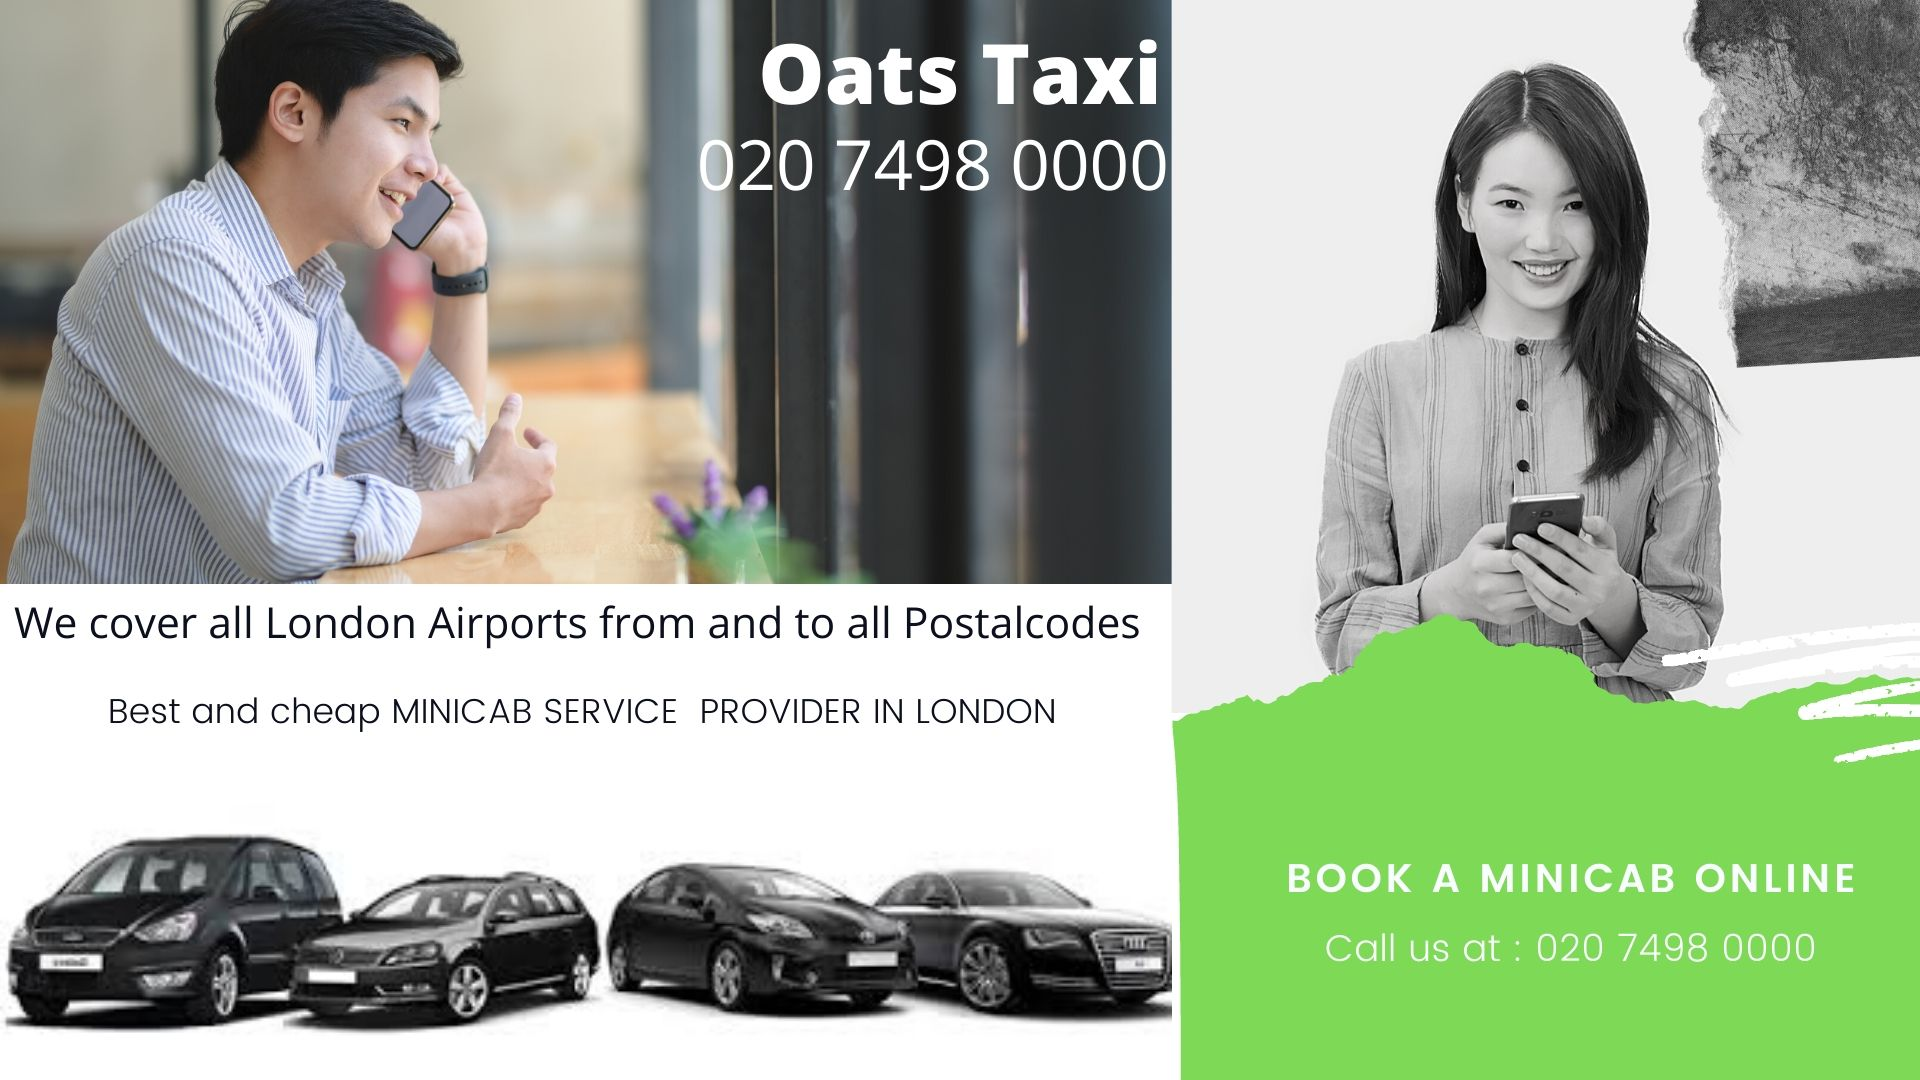 Minicab Office Near WARRINER GARDENS, Battersea SW11, Minicab From Battersea SW11 To Gatwick Airport